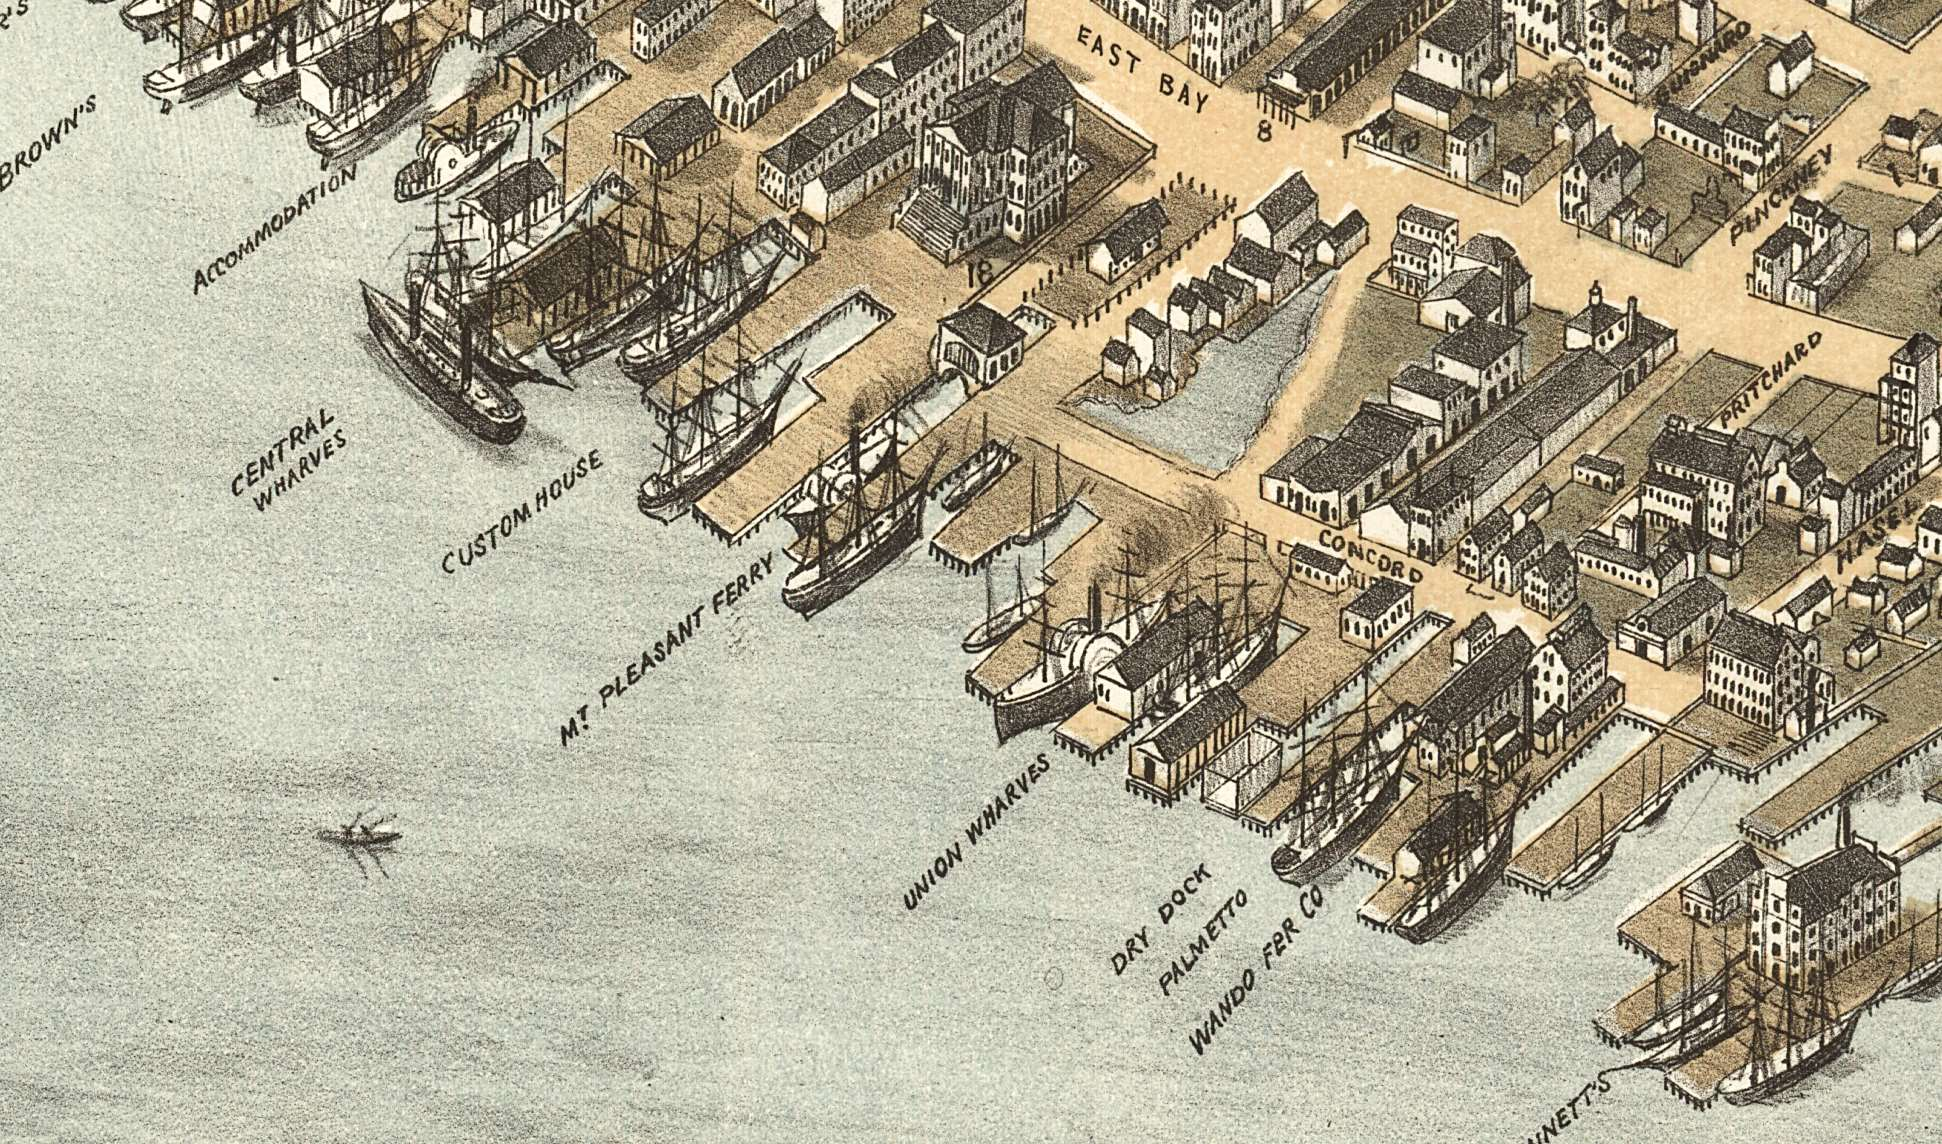 An 1872 drawing of the ferry wharves along the coast of the peninsula.